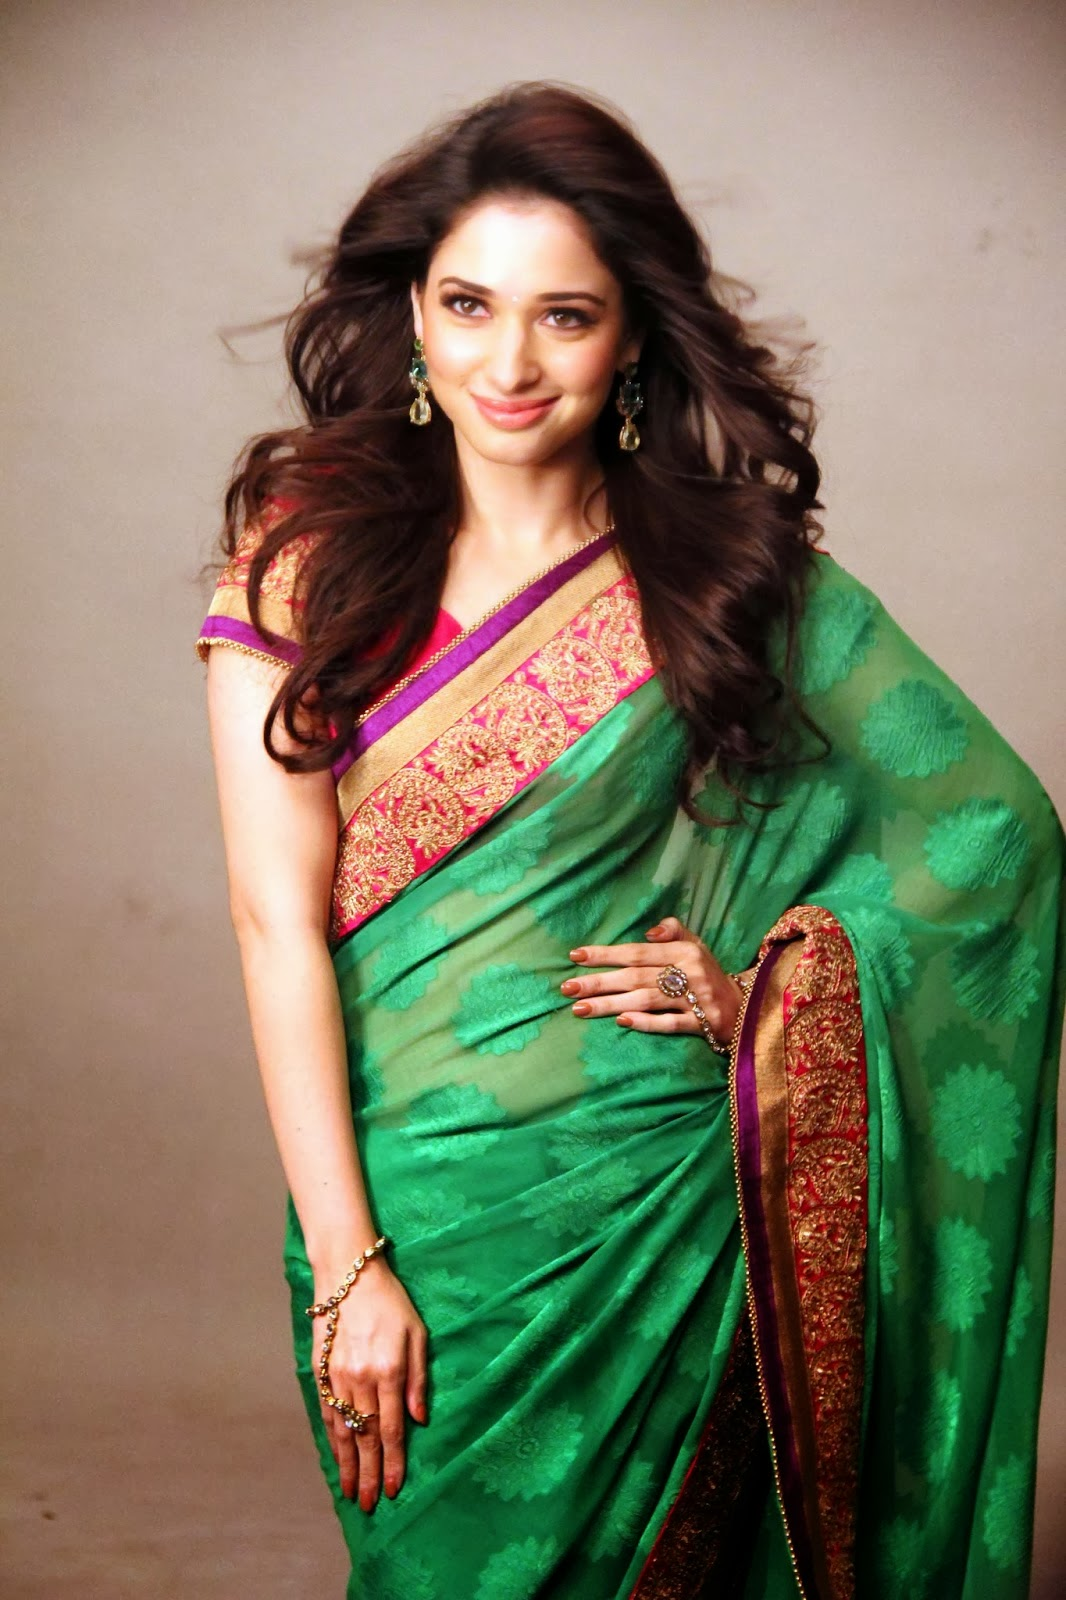 ... actress tamanna photos images telugu actress hd wallpapers tamanna